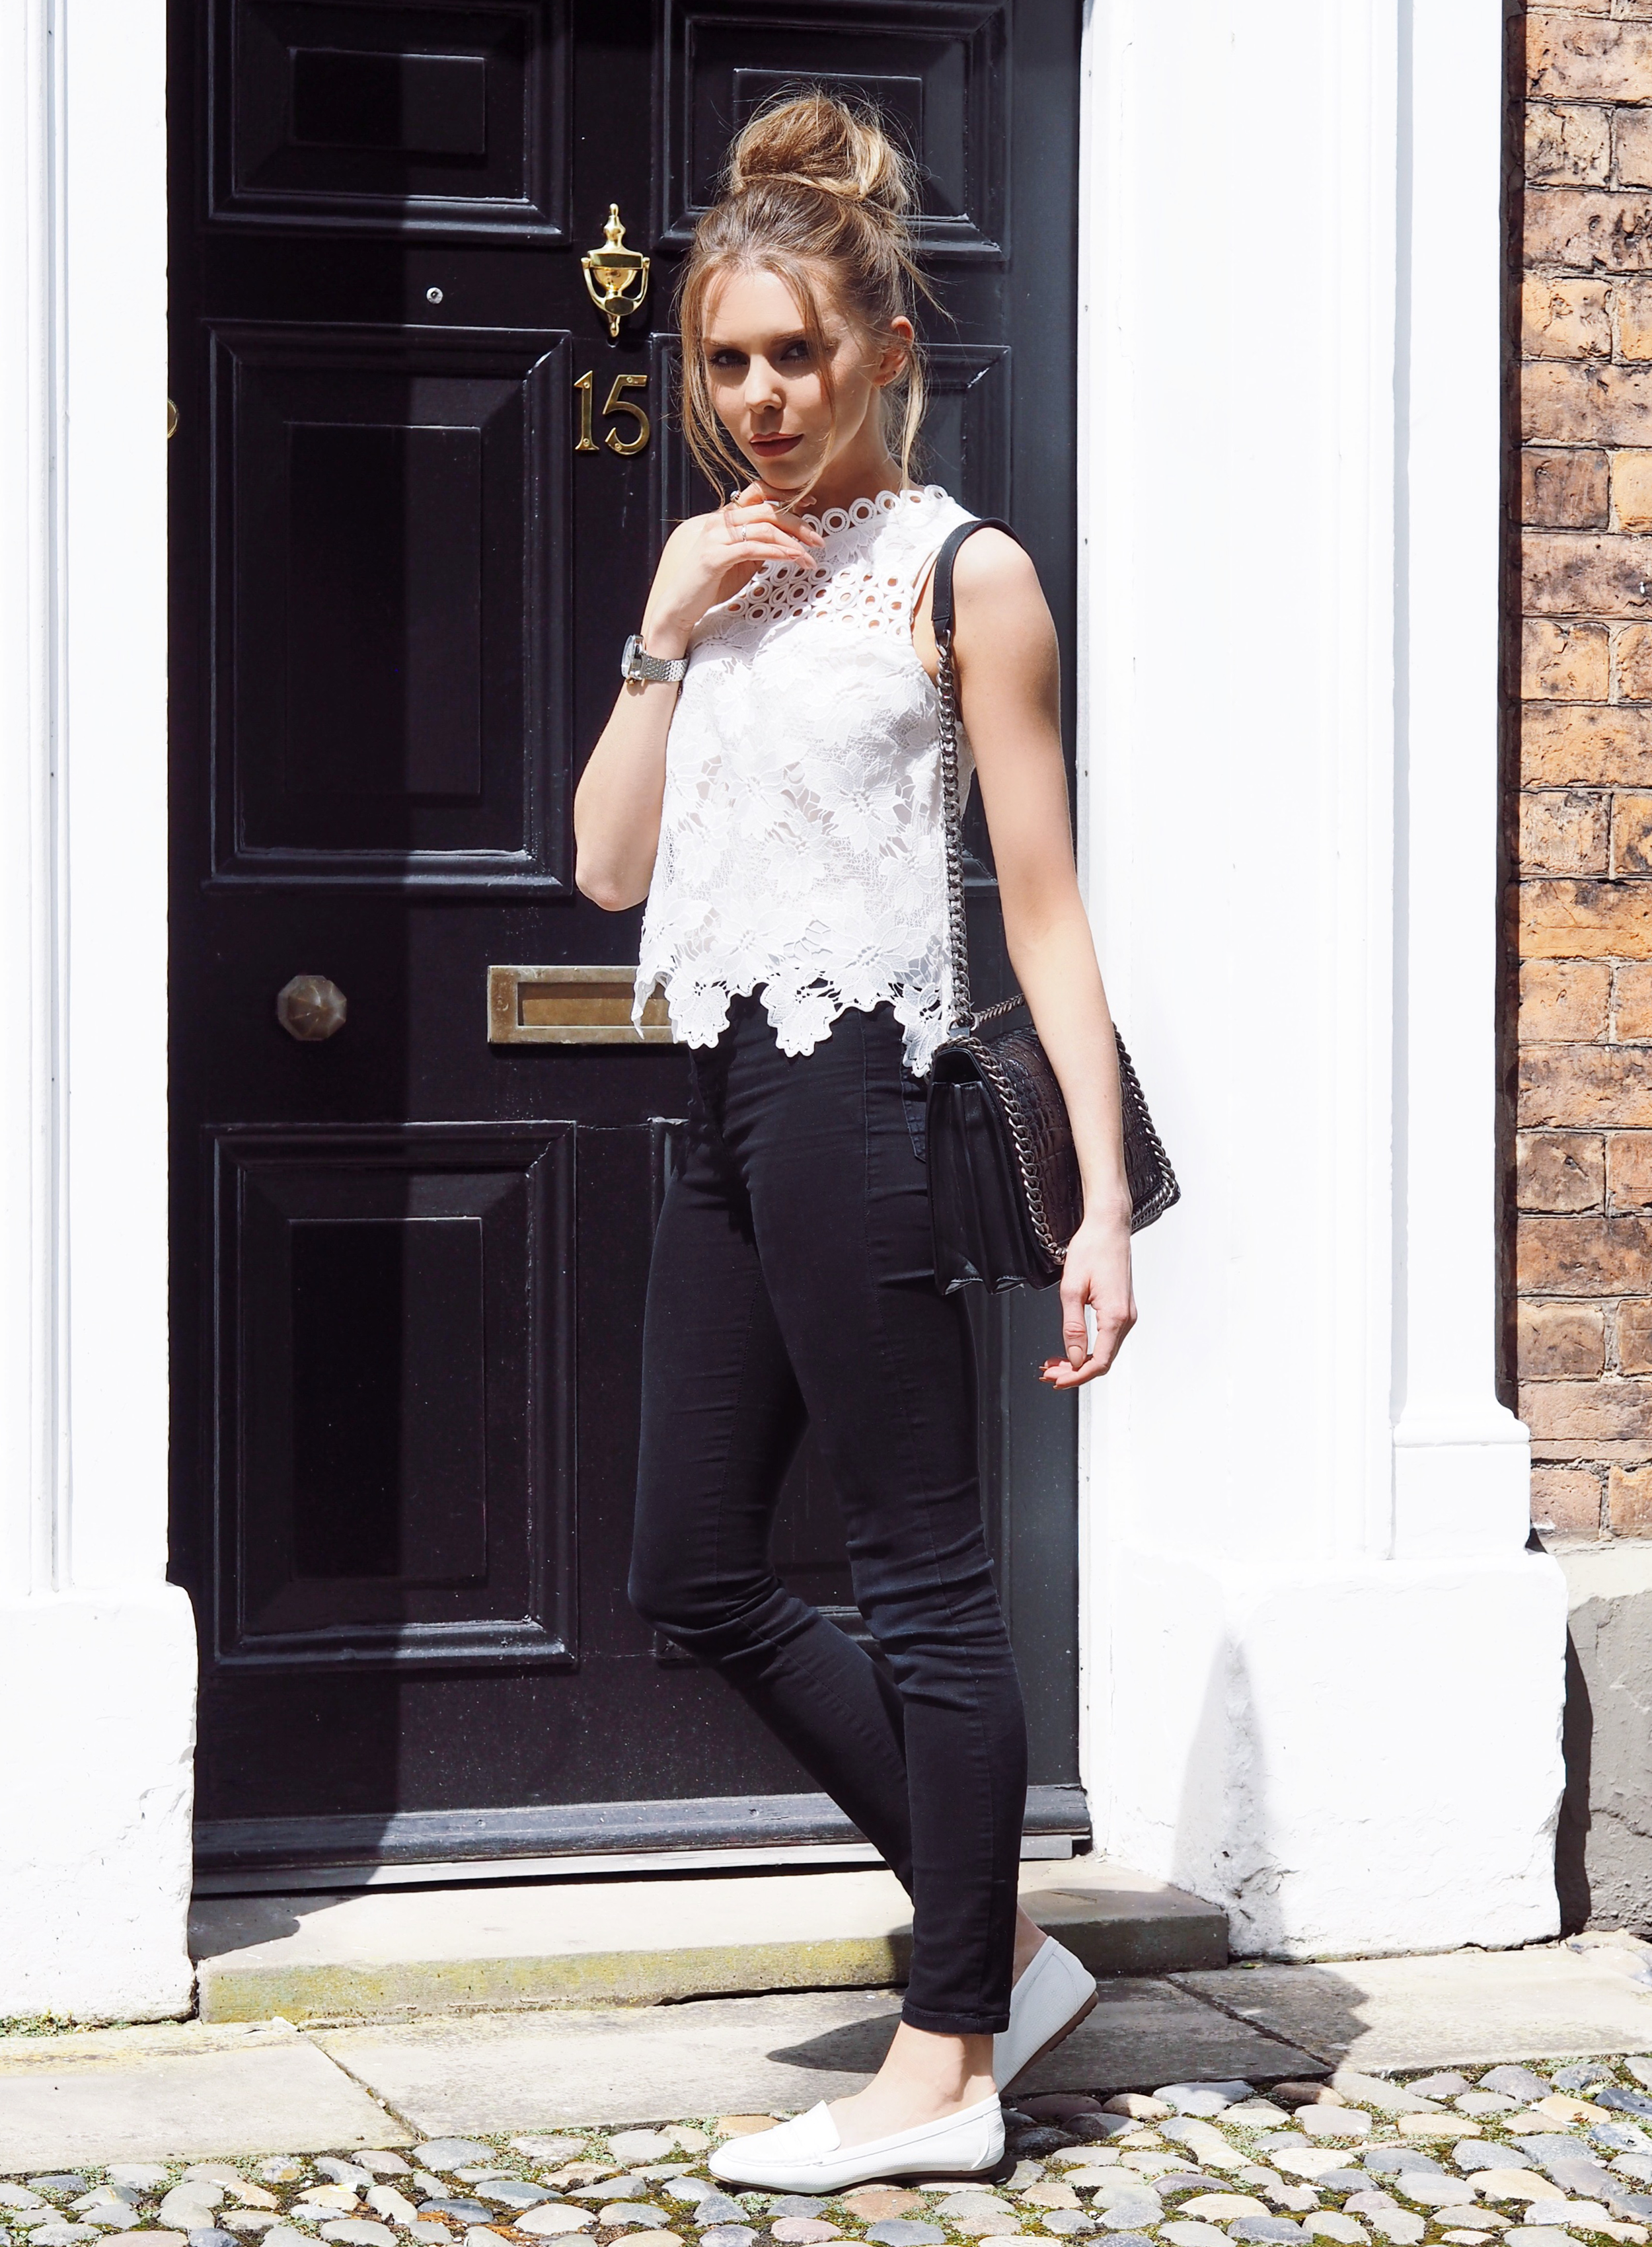 MONOCHROME STYLE FASHION BLACK AND WHITE LAURA BLAIR LONDON FASHION GIRL LAURA BLAIR